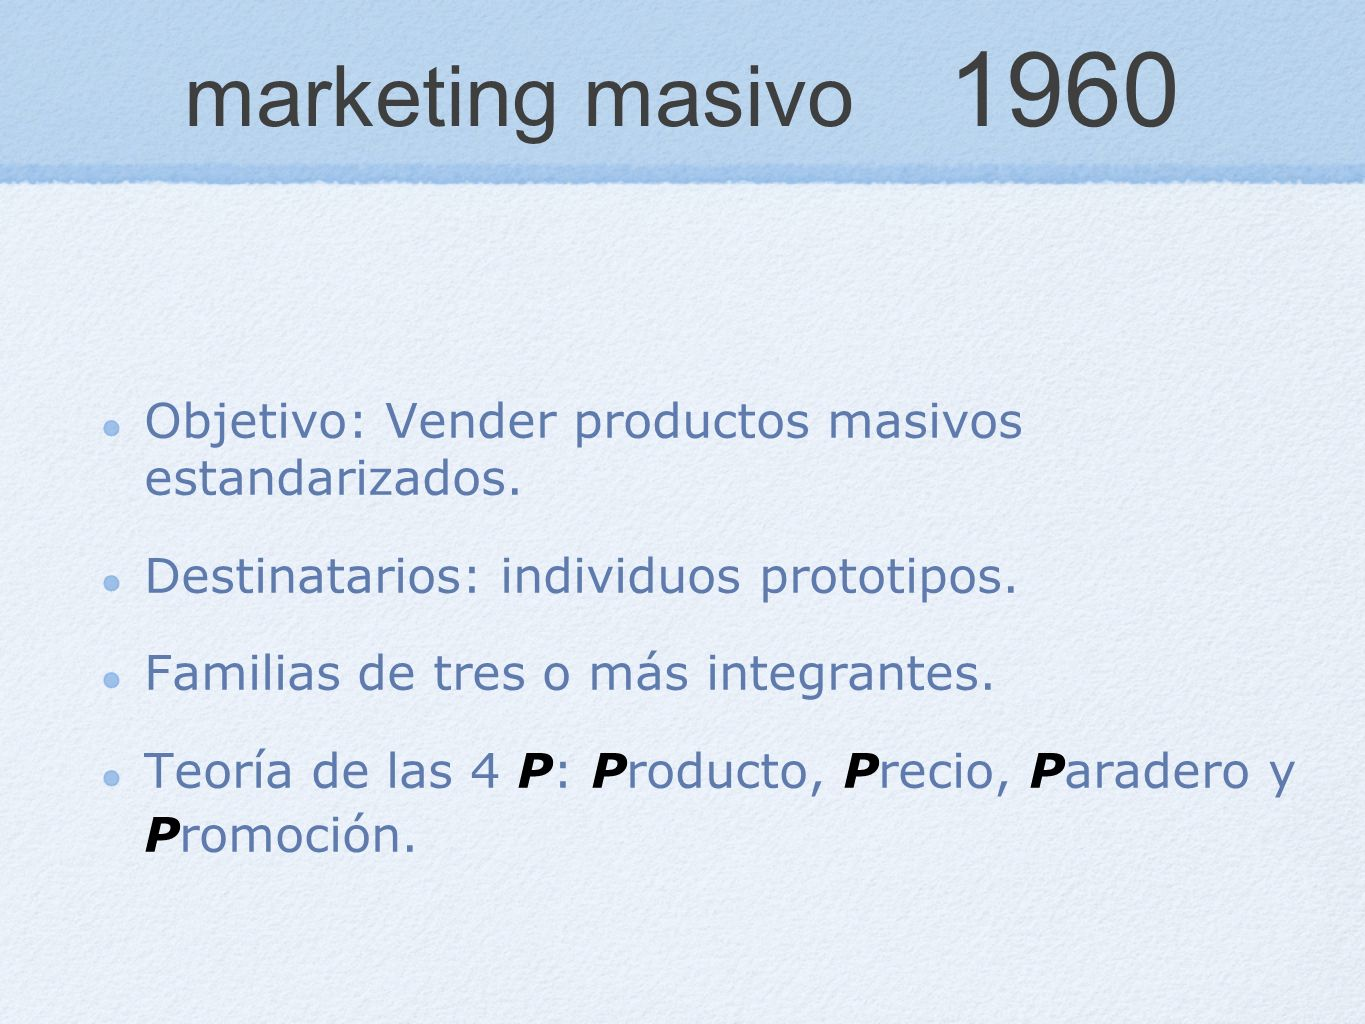 marketing masivo 1960 Objetivo: Vender productos masivos estandarizados. Destinatarios: individuos prototipos.